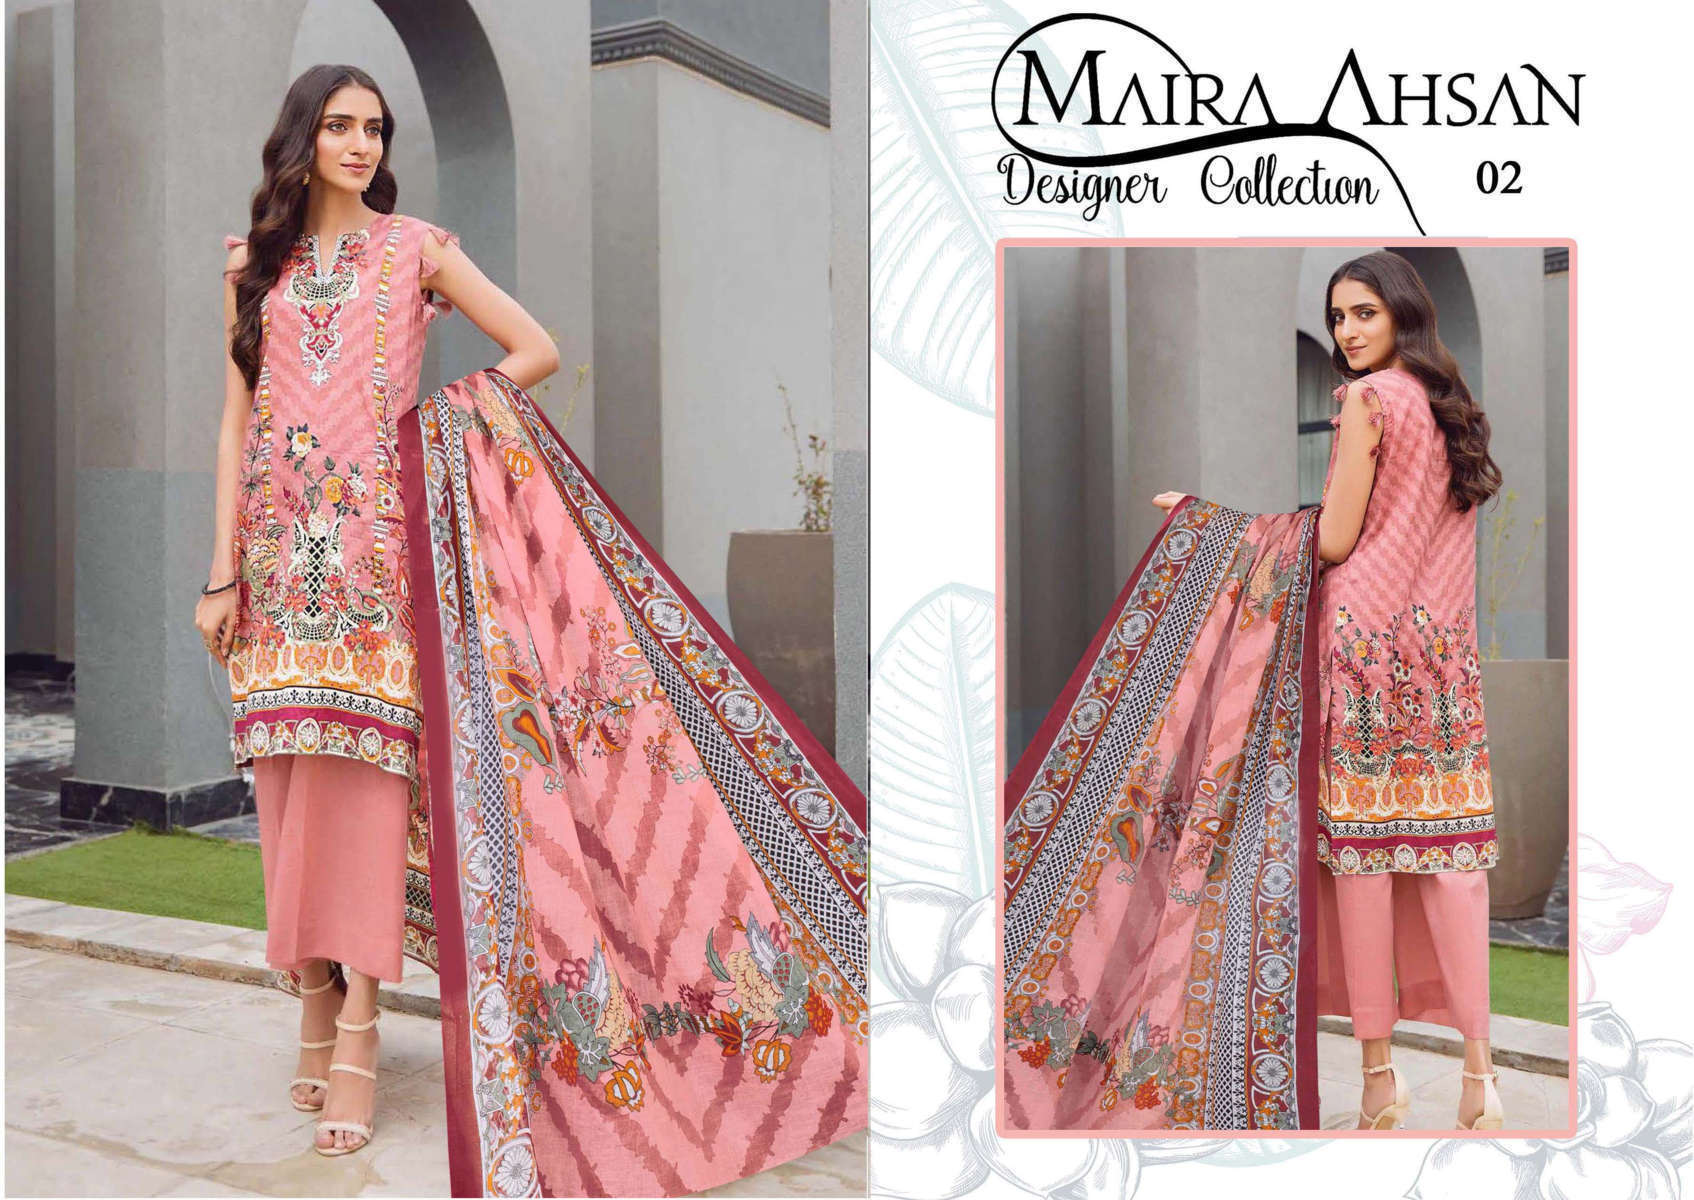 Maira Ahsan Designer Collection Vol 1 Salwar Suit Wholesale Catalog 10 Pcs 3 - Maira Ahsan Designer Collection Vol 1 Salwar Suit Wholesale Catalog 10 Pcs